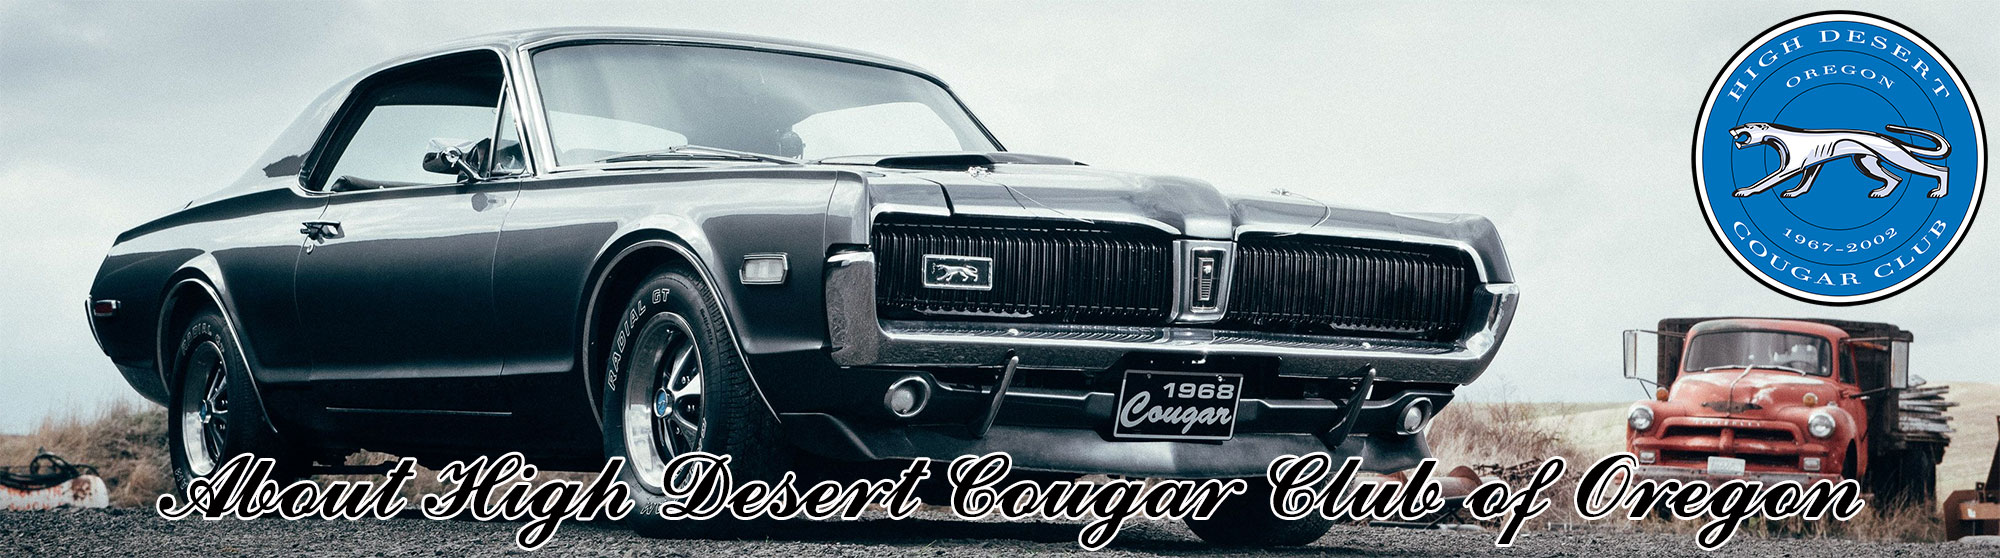 About High Desert Cougar Club of Oregon